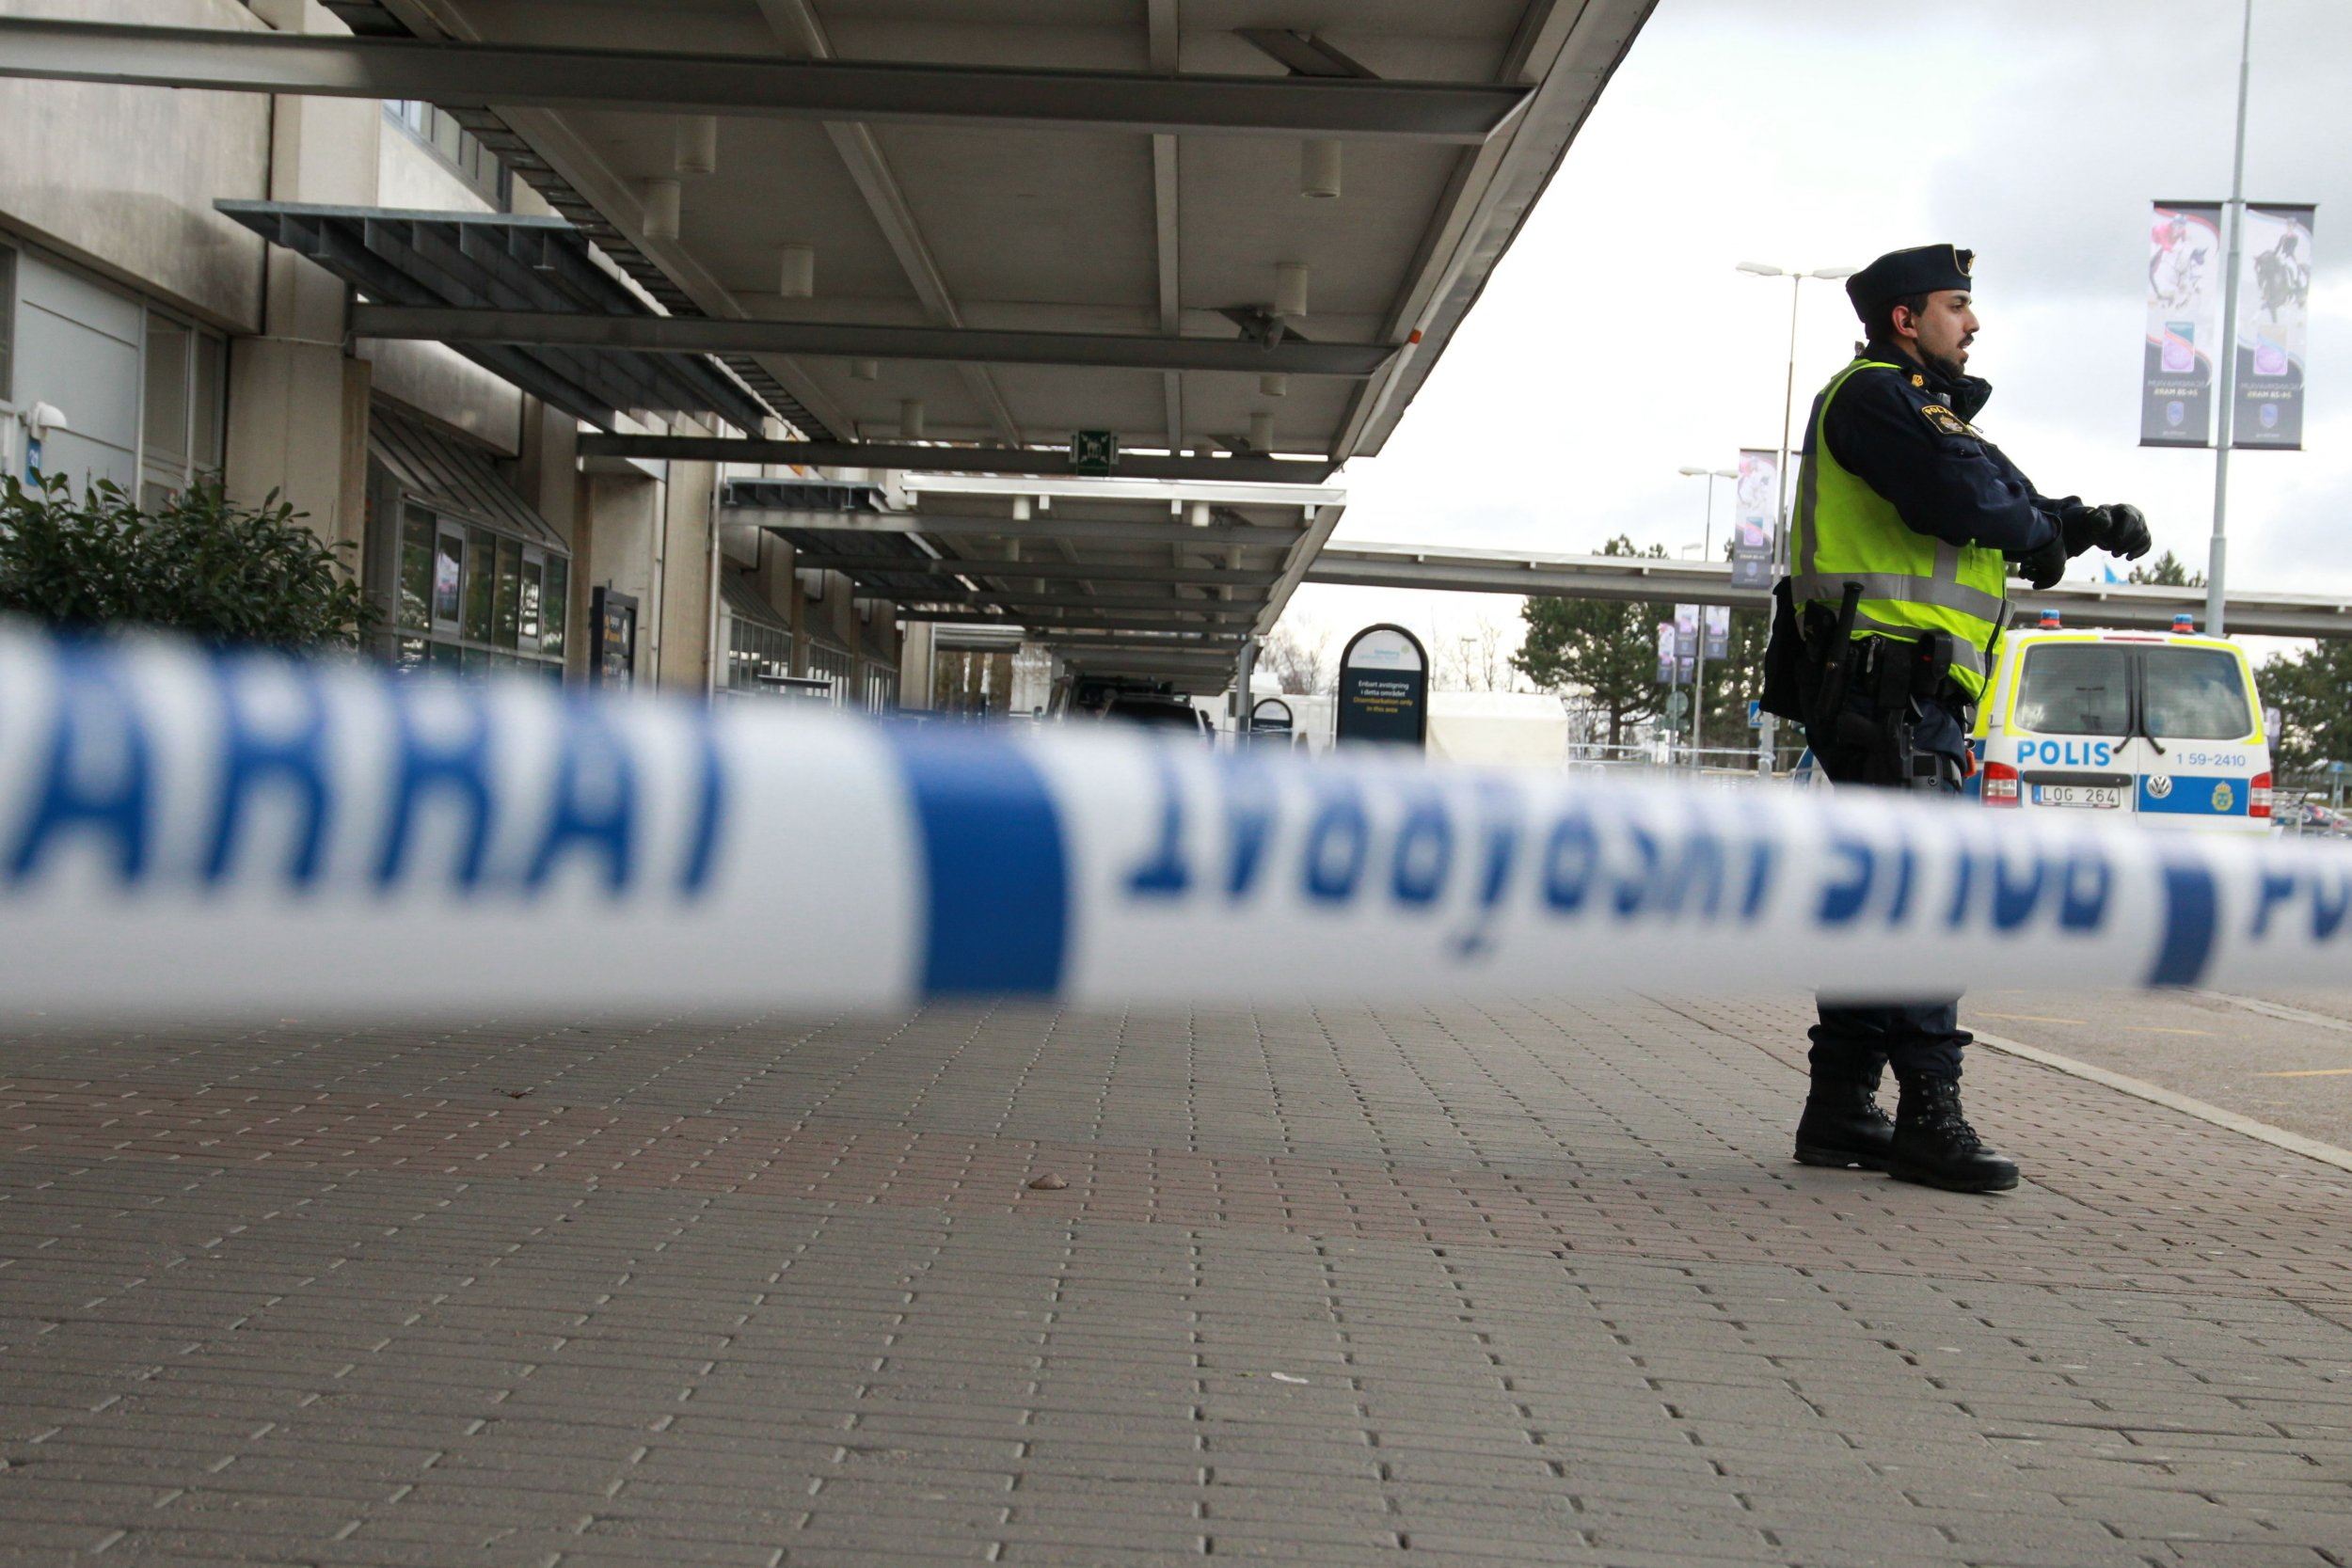 Gothenburg airport bomb scare